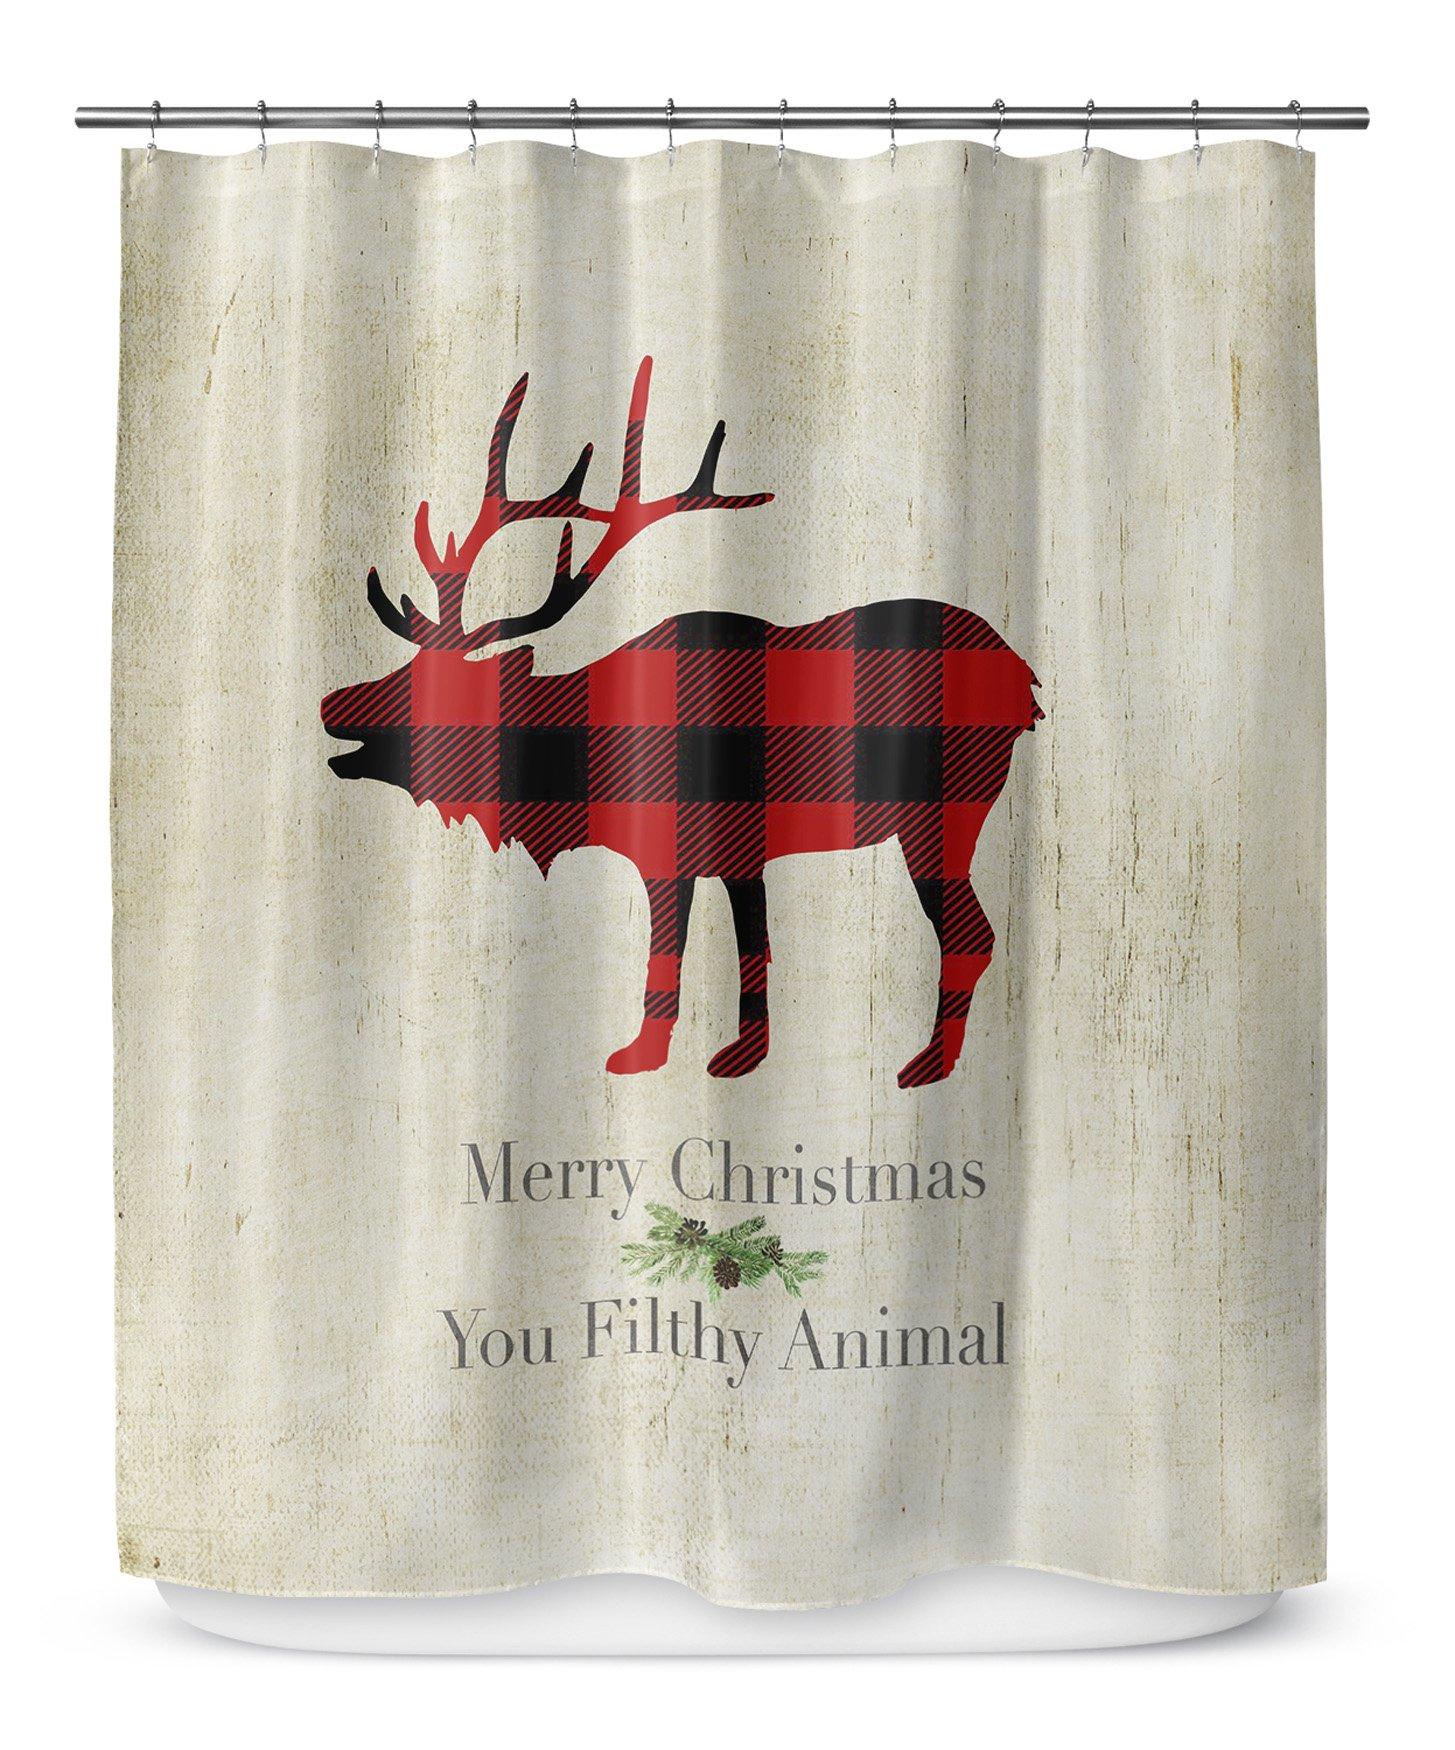 KAVKA Designs Filthy Animal Shower Curtain, (Beige/Red/Black) - TRADITIONS Collection, Size: 70x72 - (TELAVC1402SPLSC)